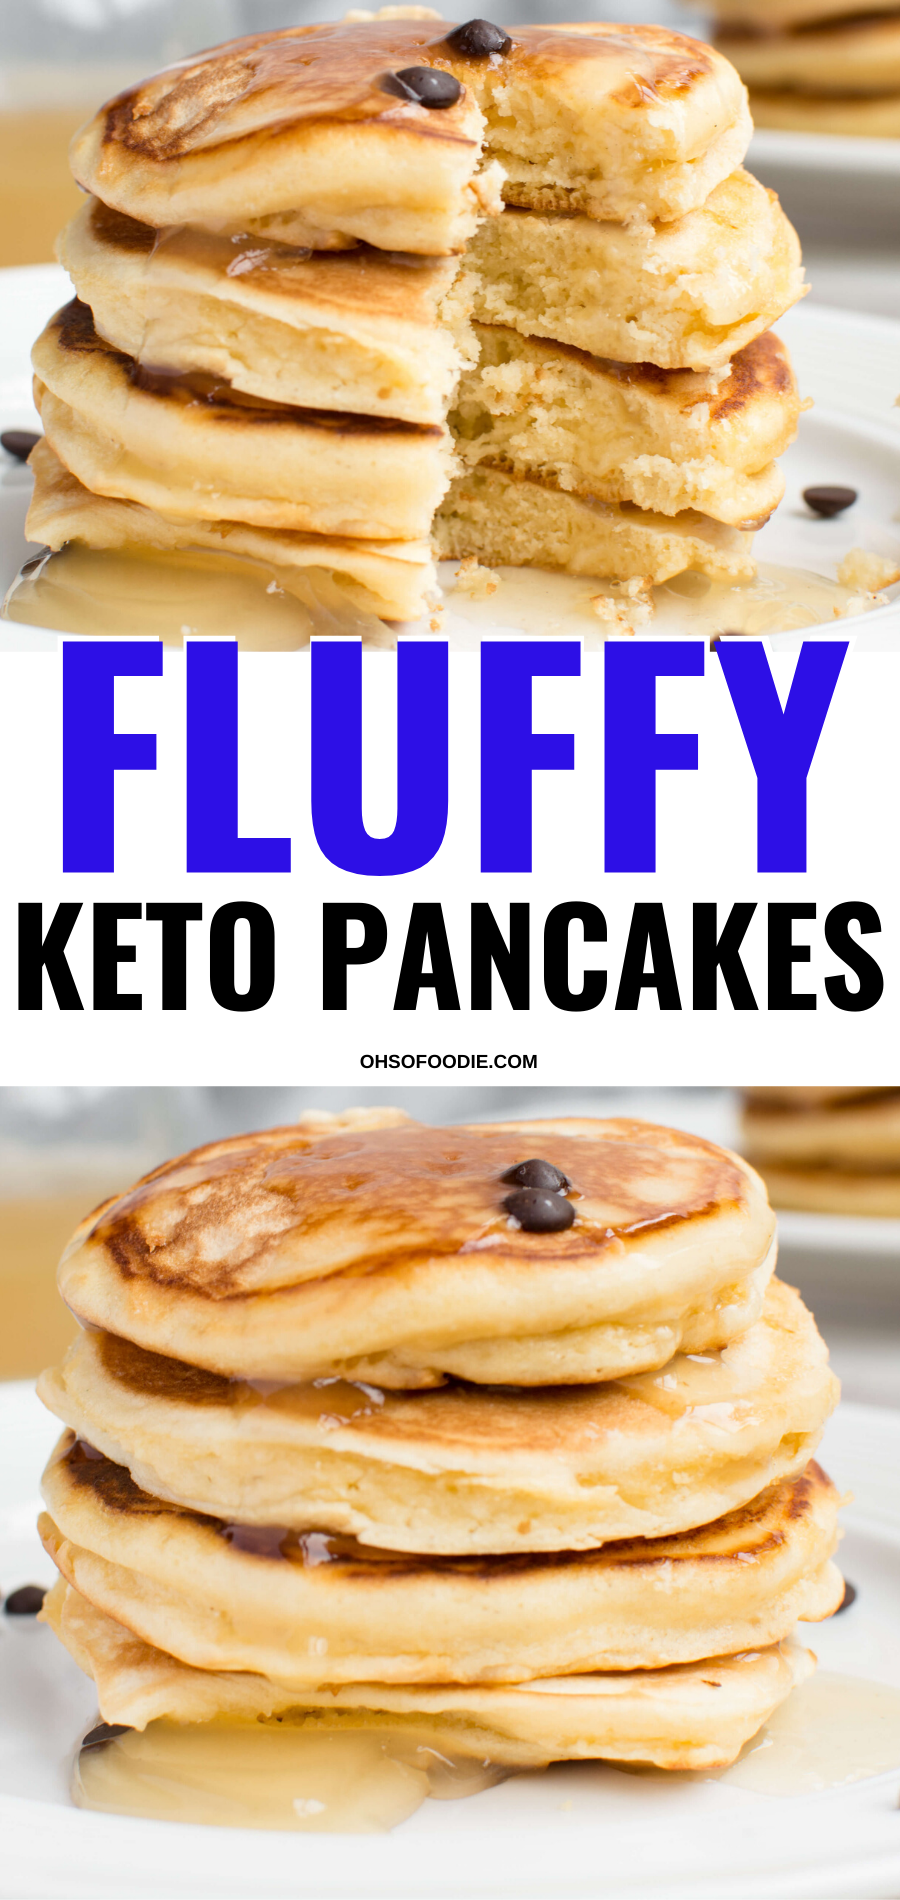 Fluffy Keto Pancakes Make With Almond Flour And Cream Cheese - Oh So Foodie